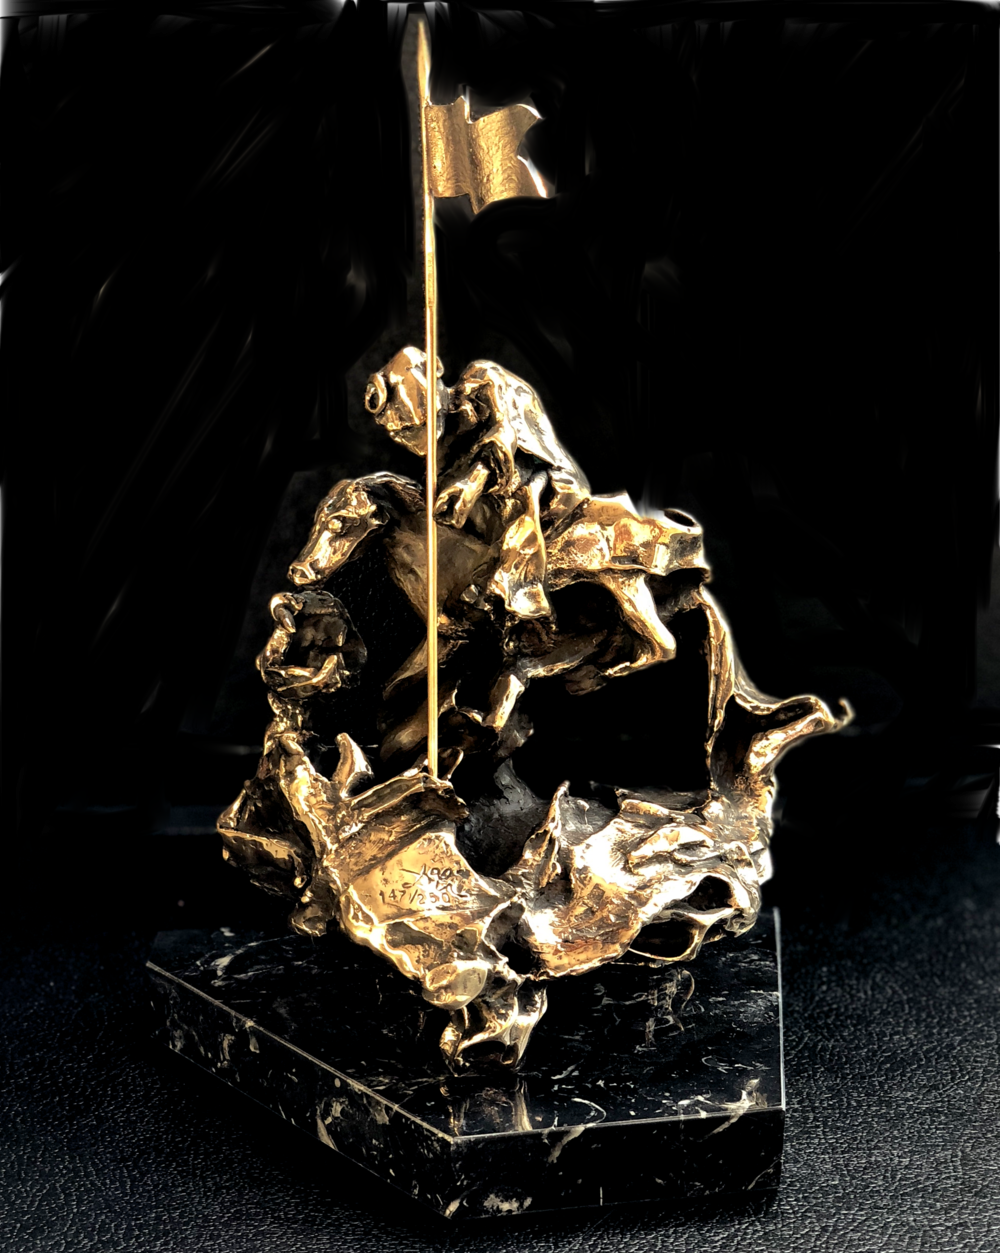 SALVADOR DALÍ   Saint George terrassant le dragon [Saint George Slaying the Dragon] , c. 1971  Original gold patinated bronze sculpture, on black marble base. Signed by the artist. Edition of 1000. 31 x 22.5 x 16 cm  Accompanied by a certificate of authenticity.  £3,800   enquire >